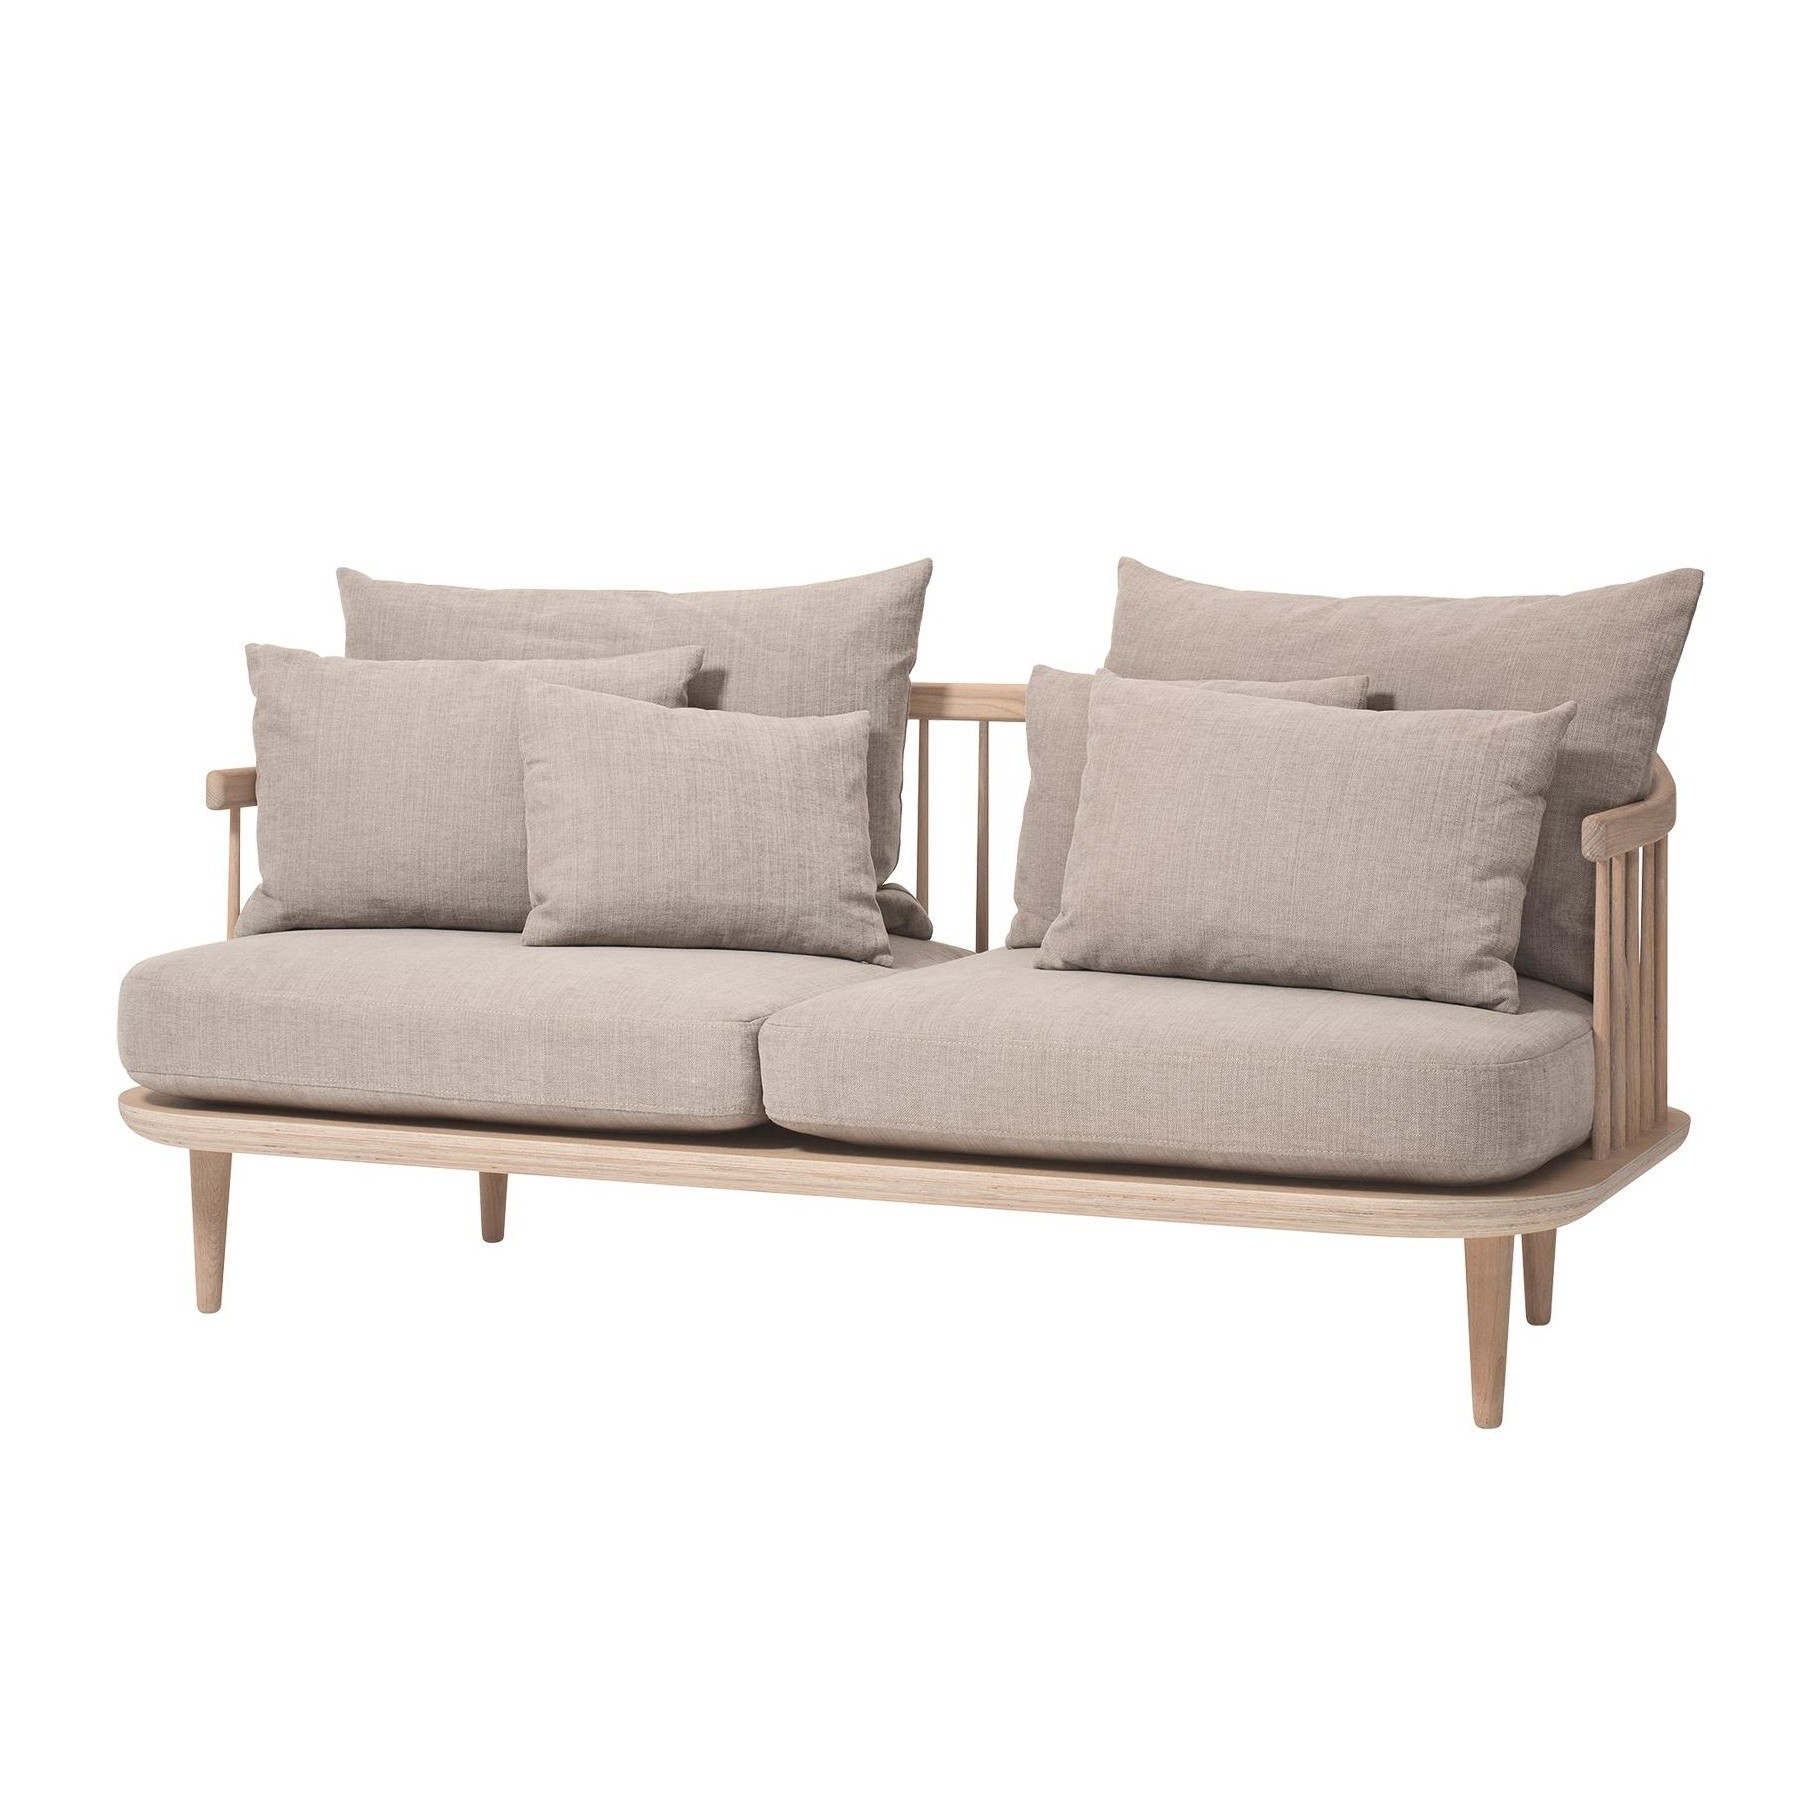 Fly Sofa Sc2 2 Seater Idc